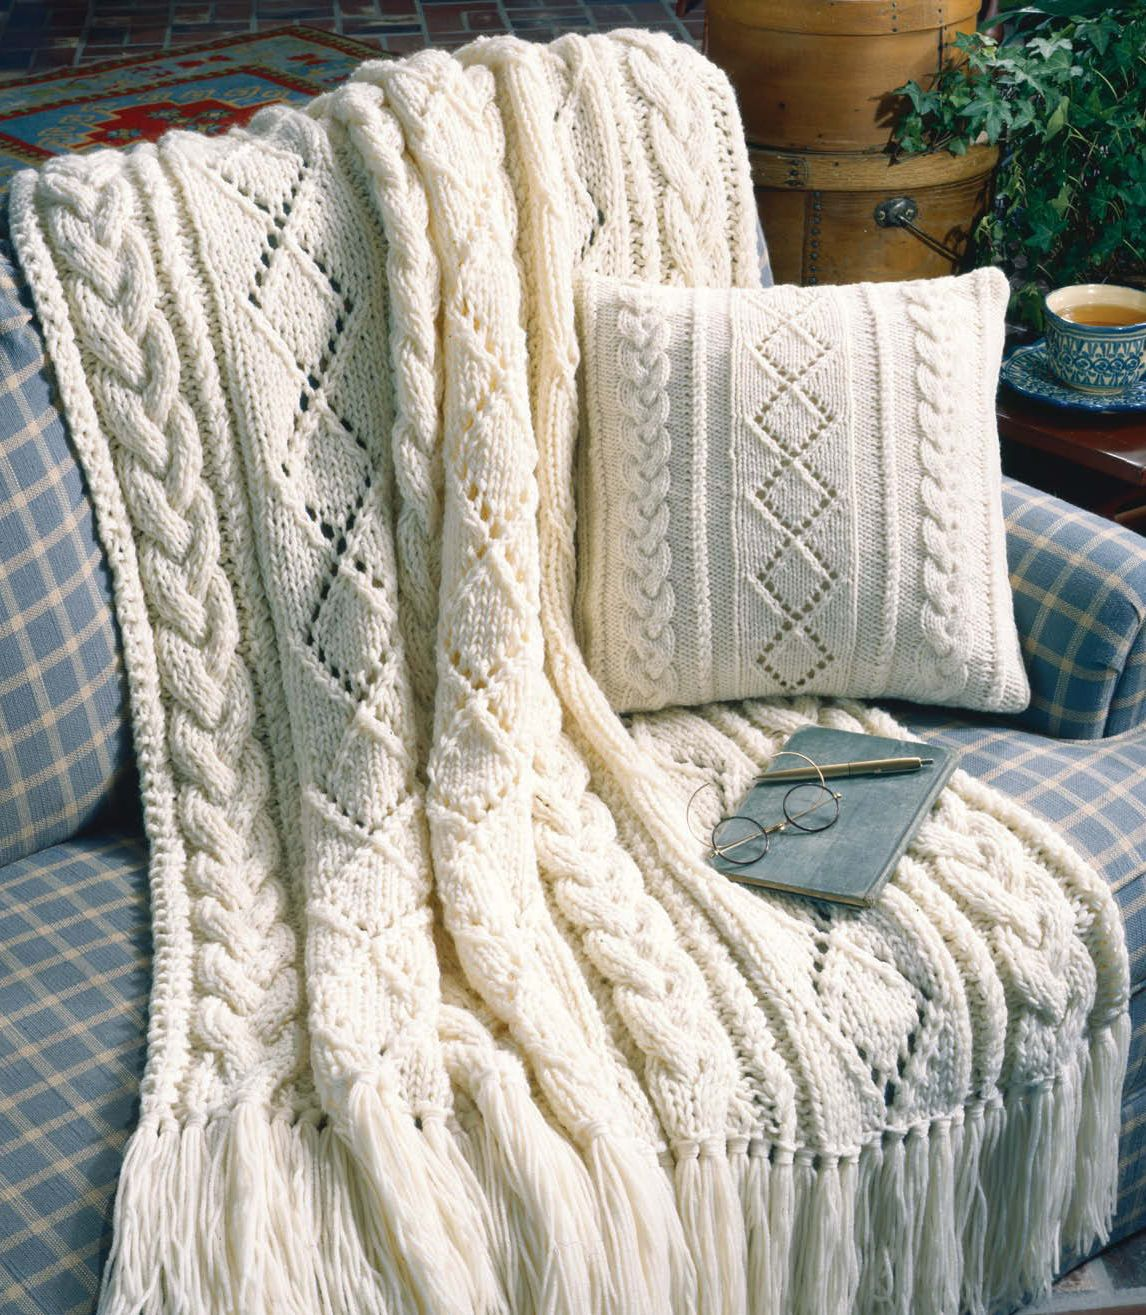 Knitting pattern cables and diamonds afghan and pillow set ad knit knitting pattern cables and diamonds afghan and pillow set ad knit on size 17 needles dt1010fo